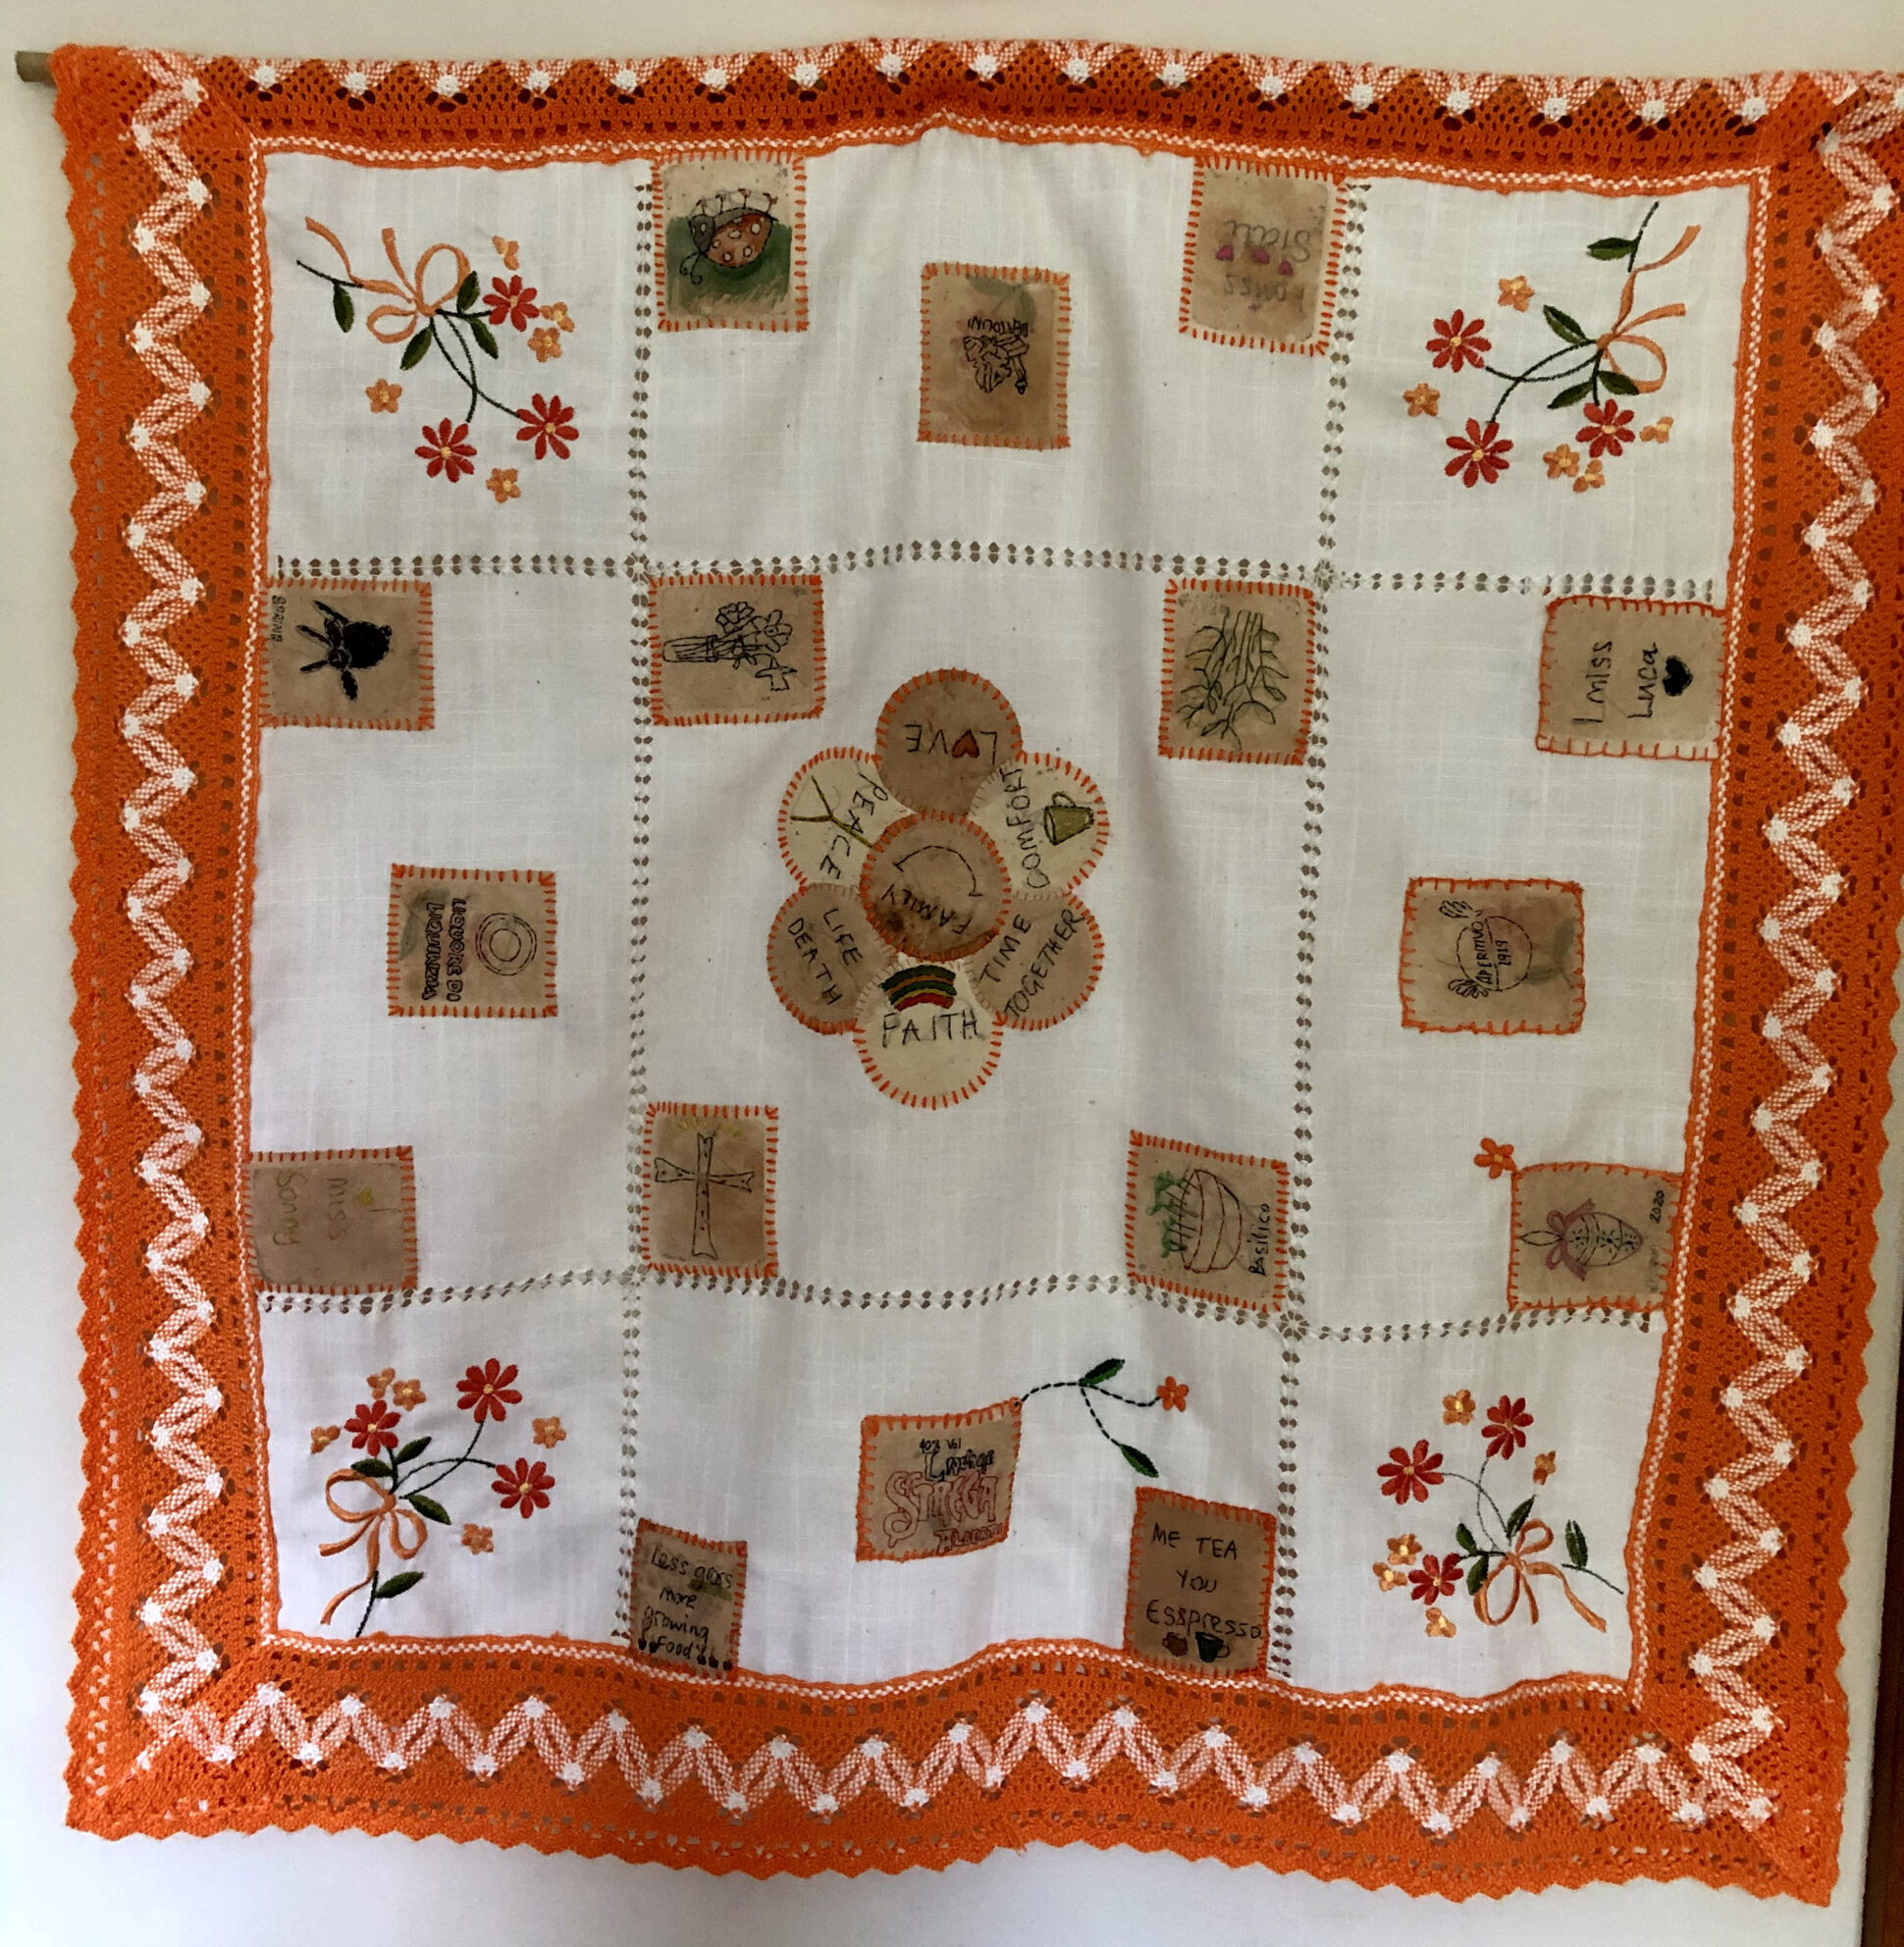 A traditional white Sicilian table cloth with an orange crochet border and floral embroidery. Paper shapes with various words and designs stitched onto them have been added to the tablecloth.